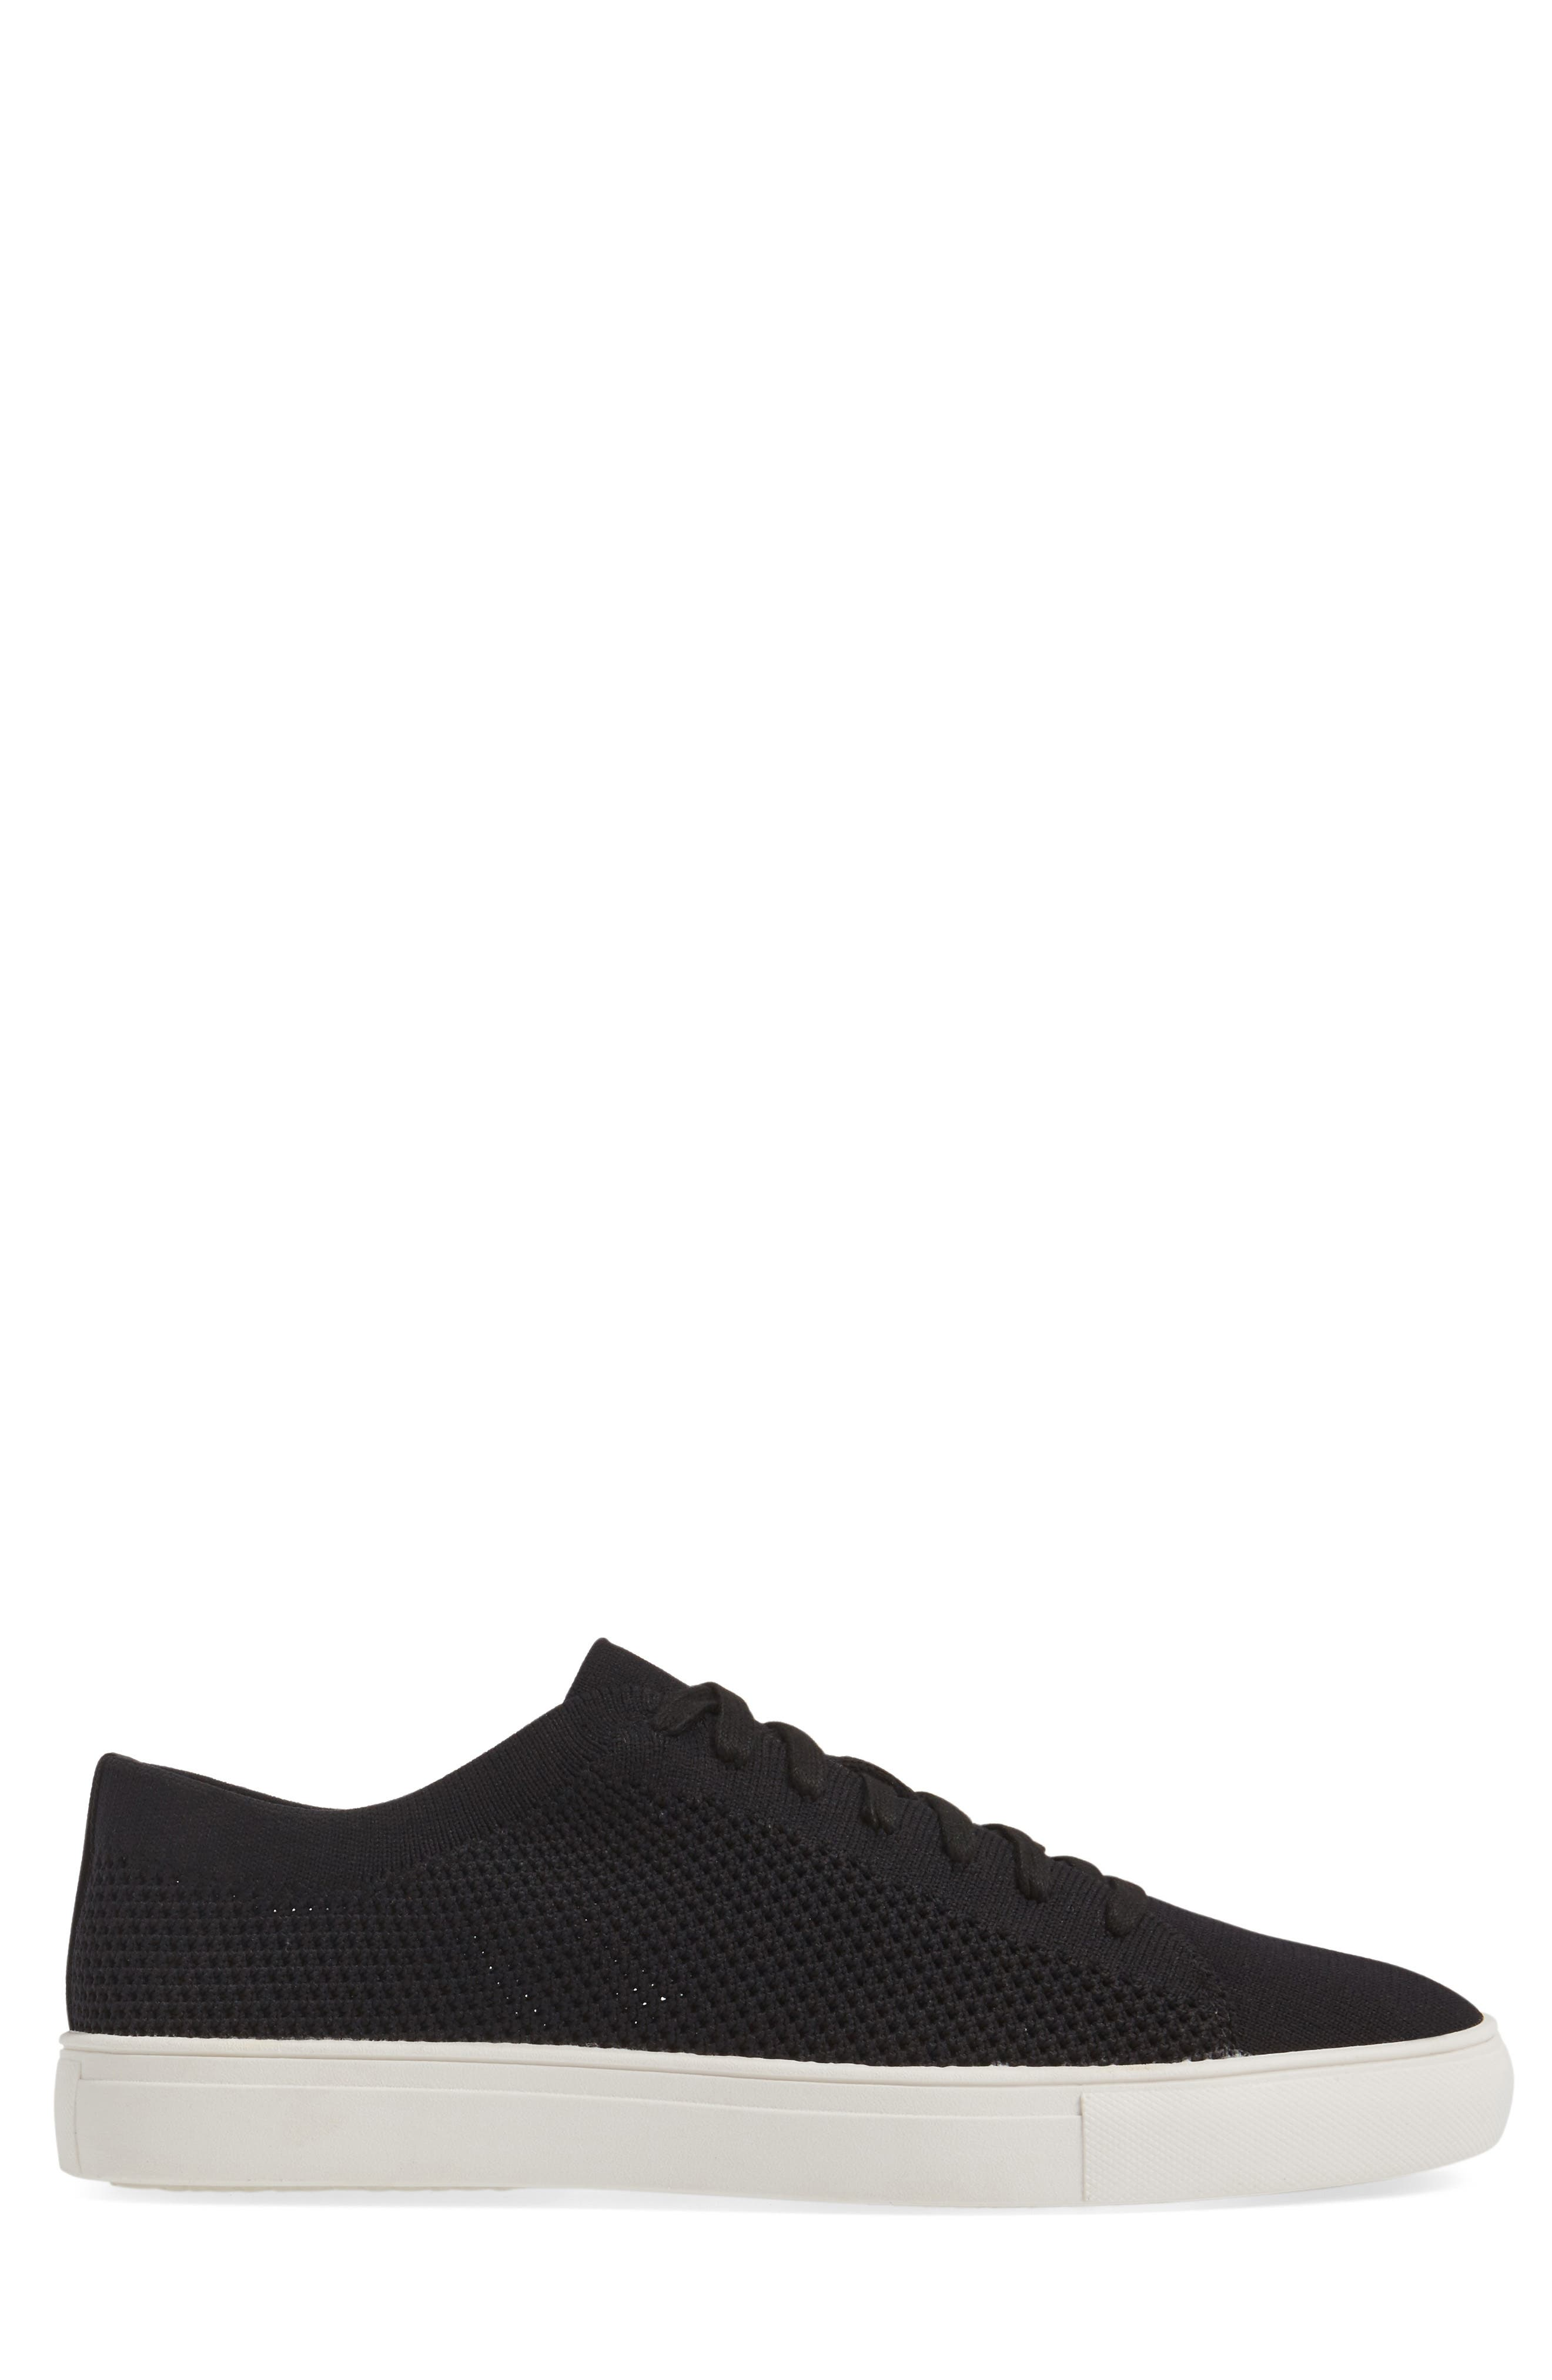 Alternate Image 3  - Reaction Kenneth Cole On the Road Woven Sneaker (Men)